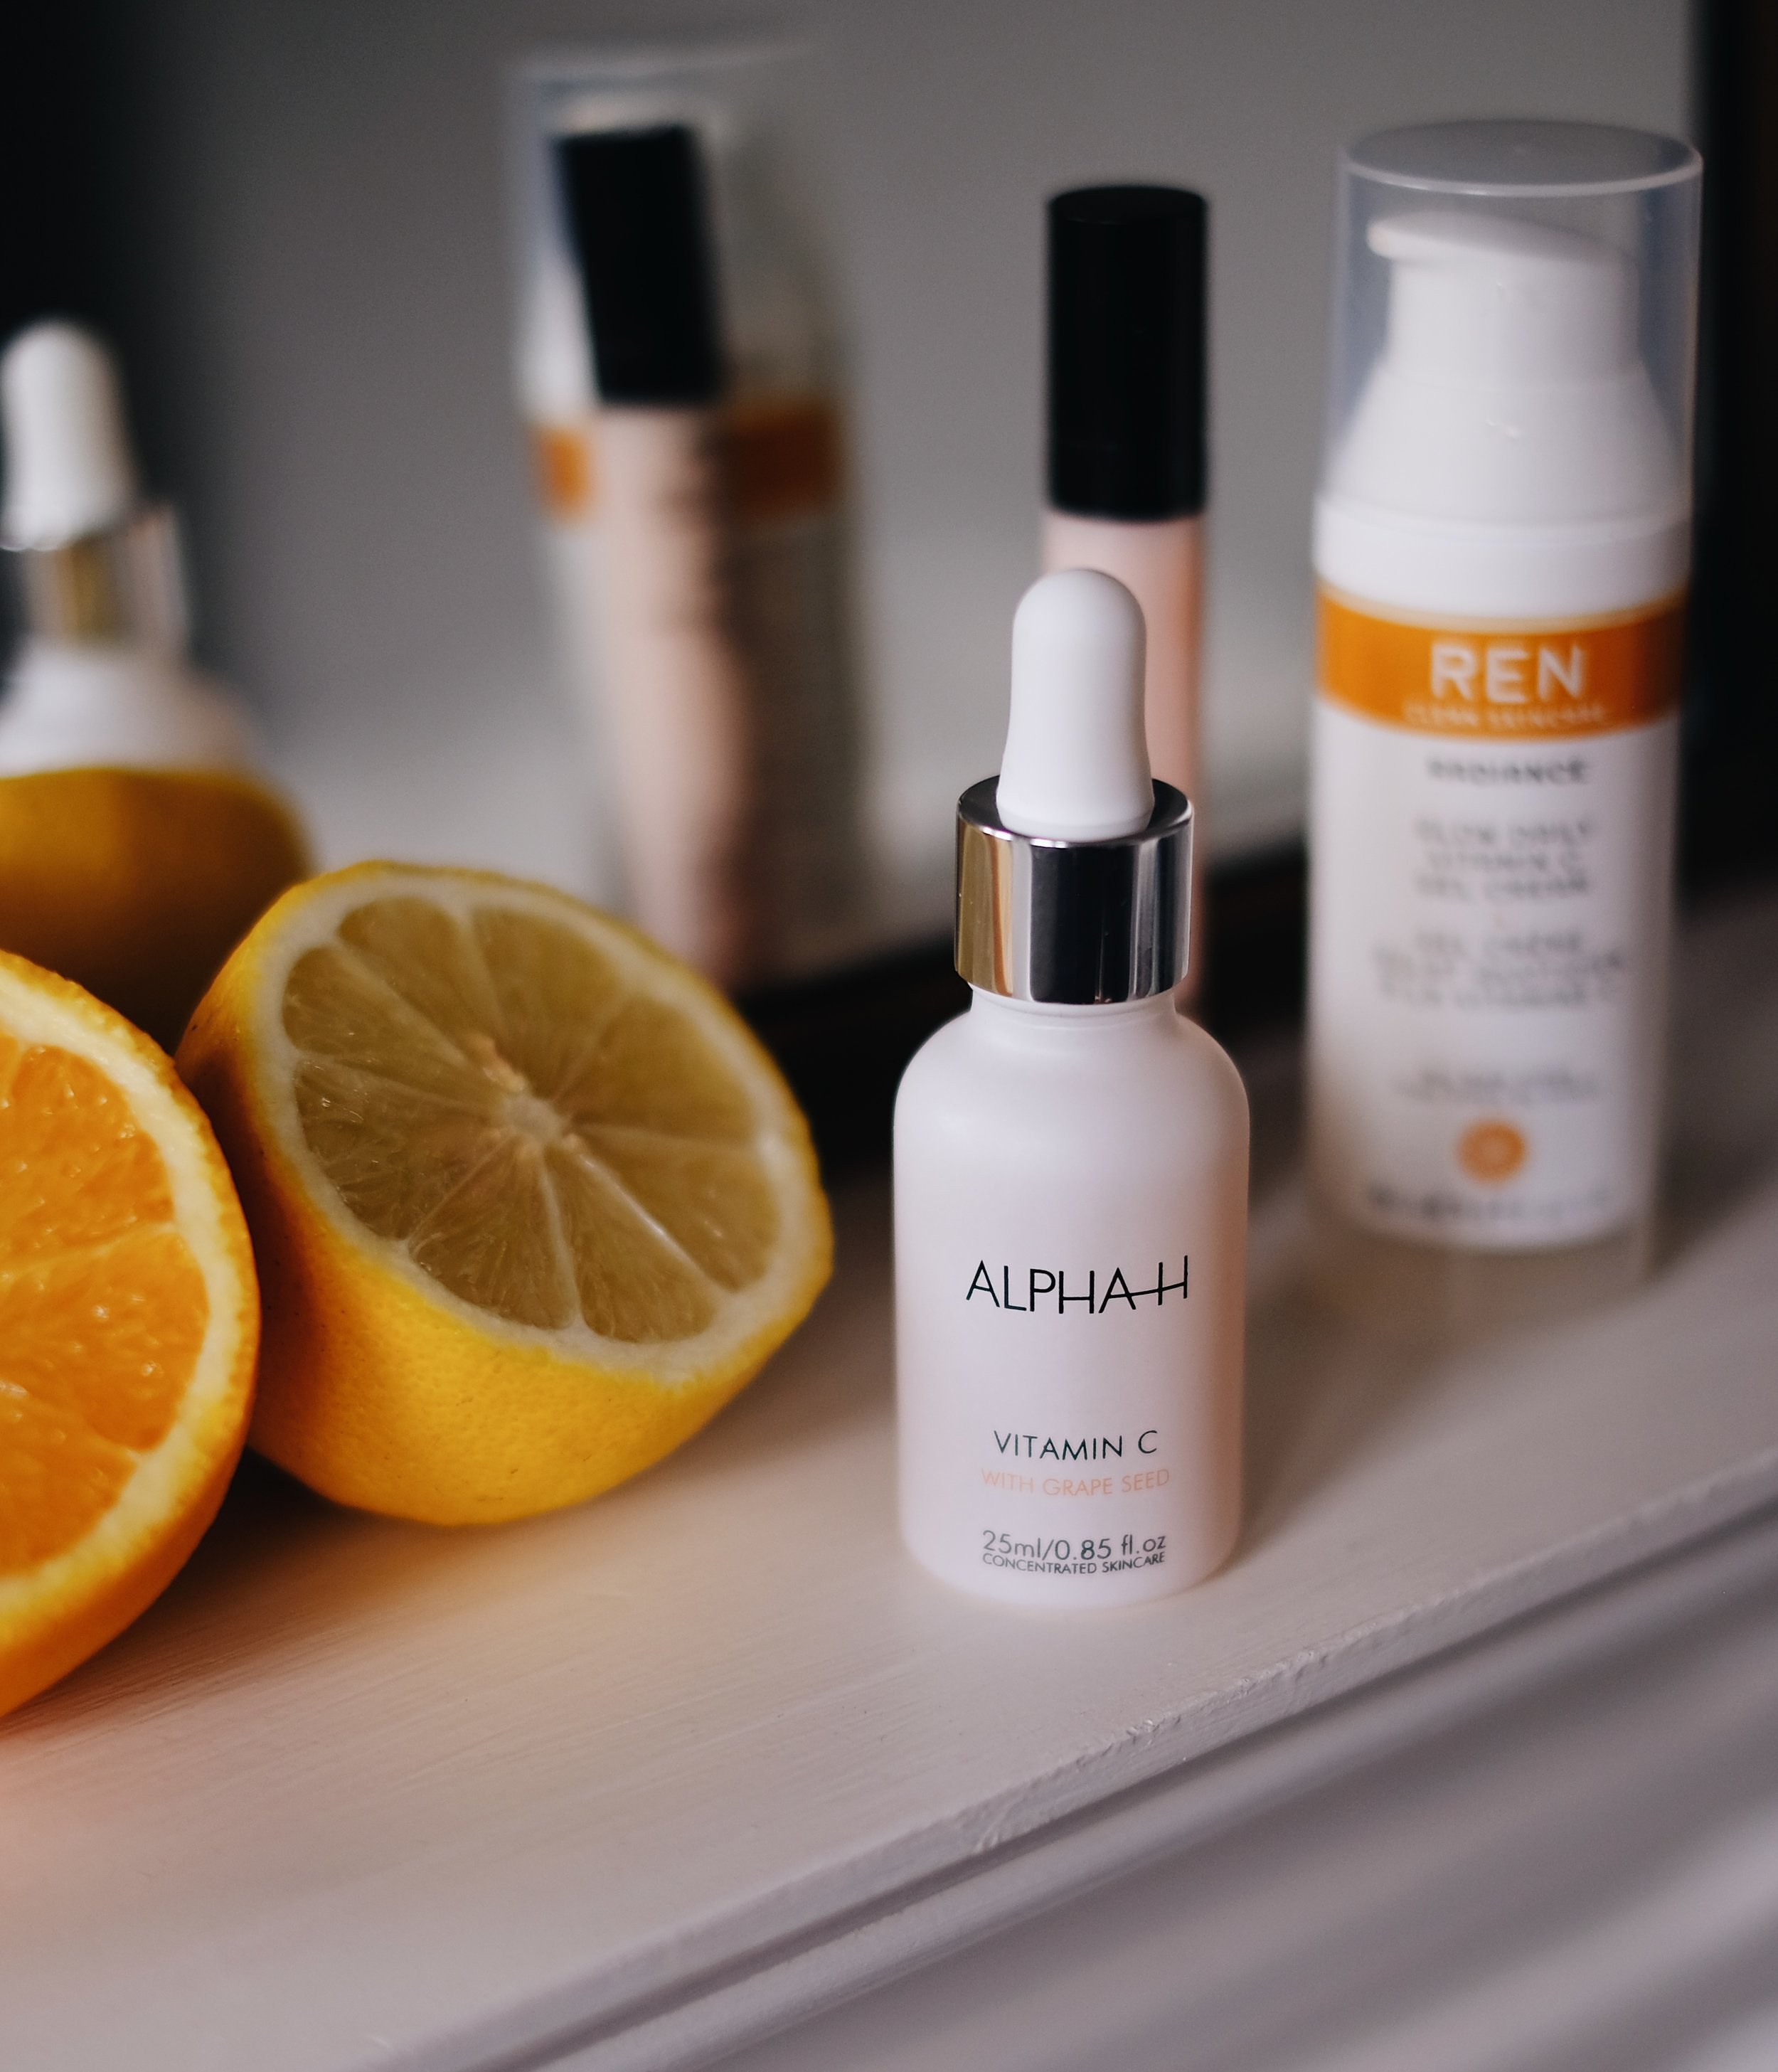 ALPHA H - Alpha-H Vitamin C Serum is blended with botanicals and the highly effective hydrating properties of Hyaluronic Acid to deliver superior antioxidant benefits. I've only used it for about 1 month and I absolutely loving it! I find it repairing and brightening. New favourite serum!Price: 25ml £39.00